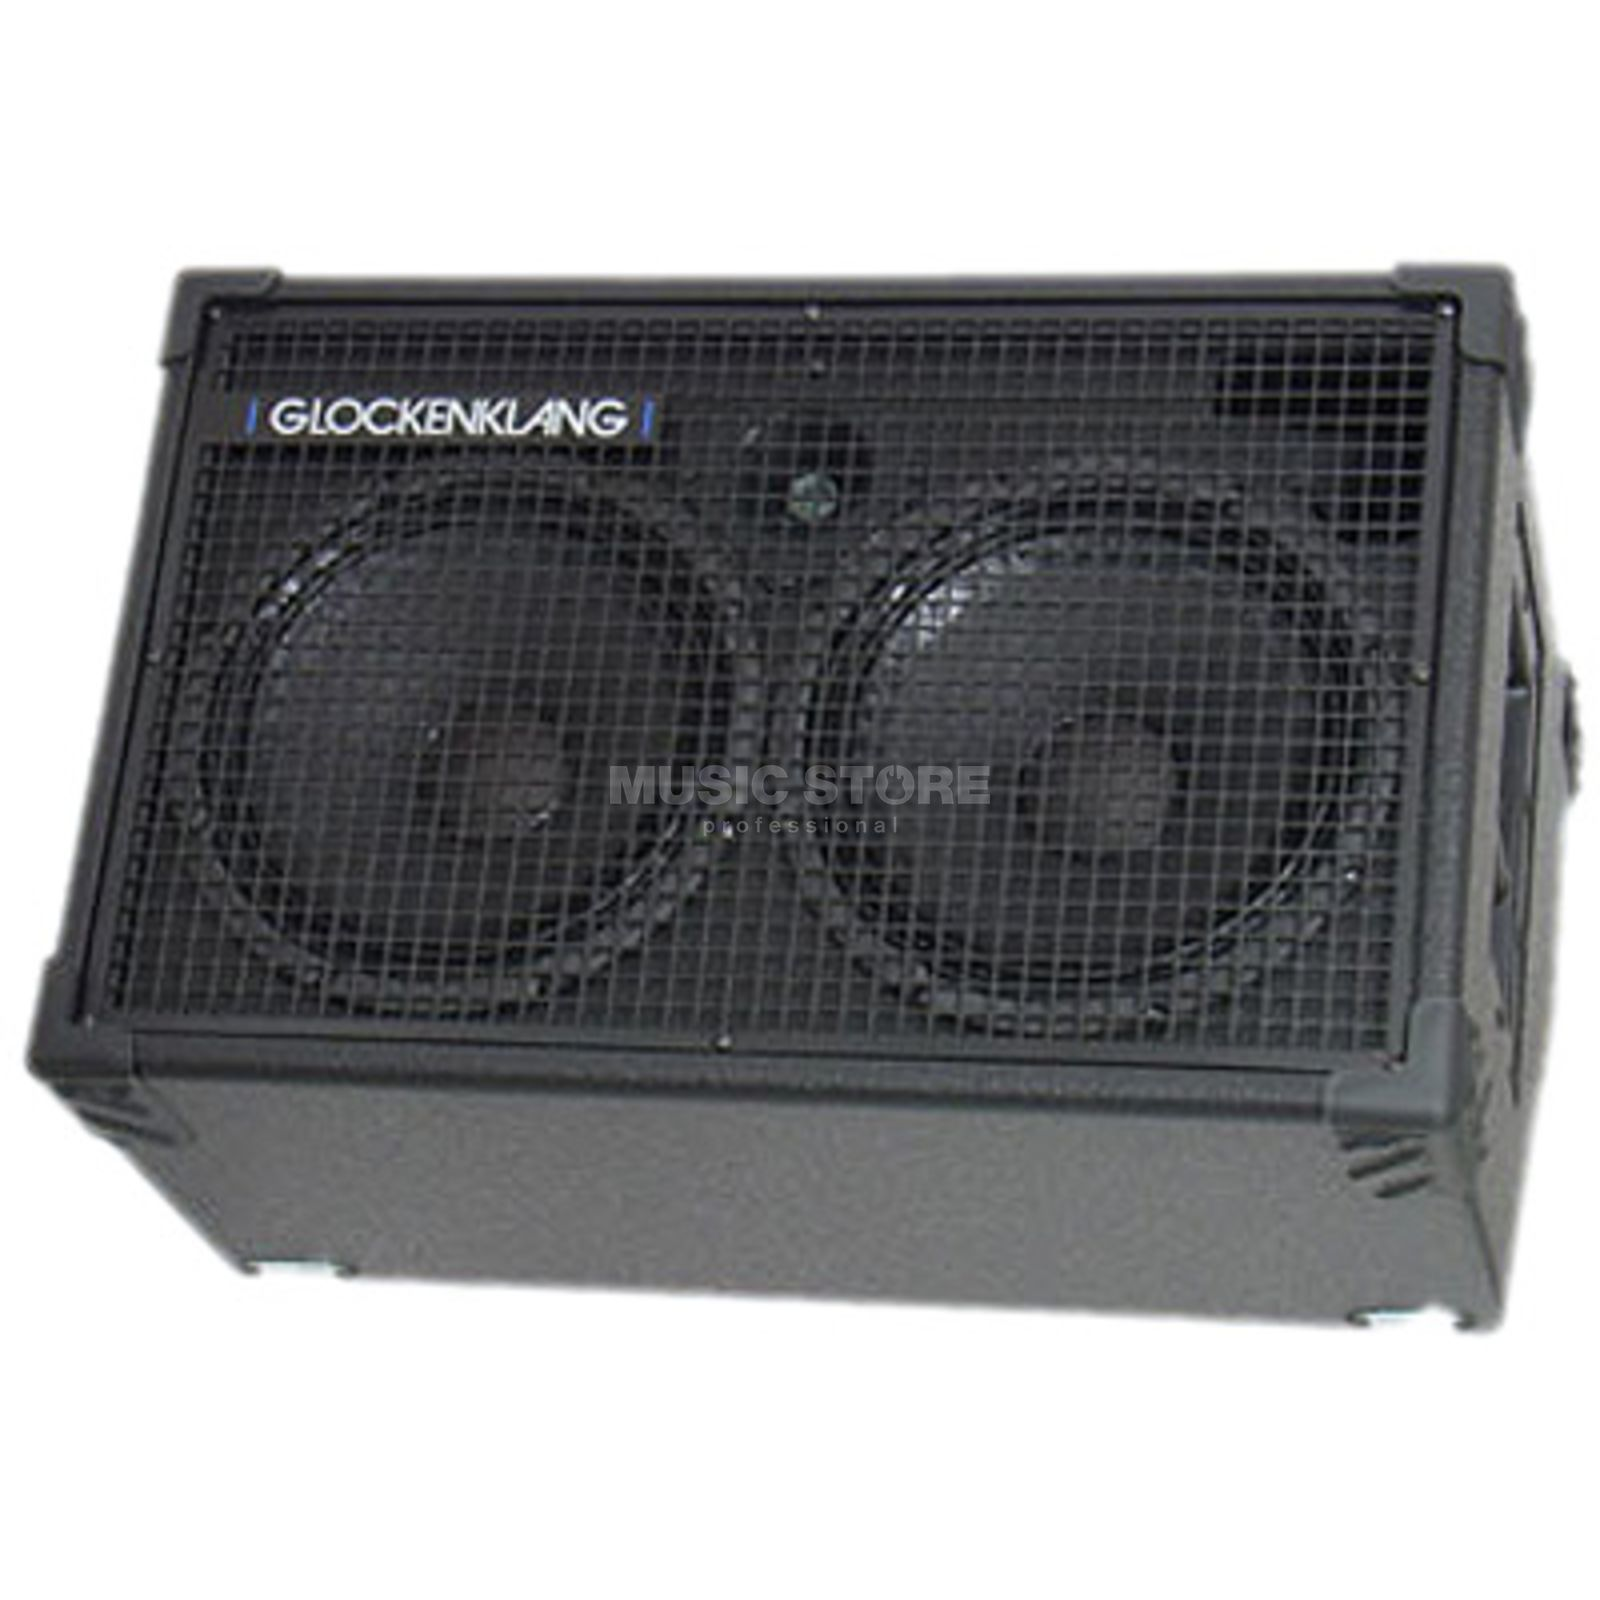 "Glockenklang Duo Wedge Box 8 Ohm 400 Watt 2x10"" Speaker +Horn Изображение товара"